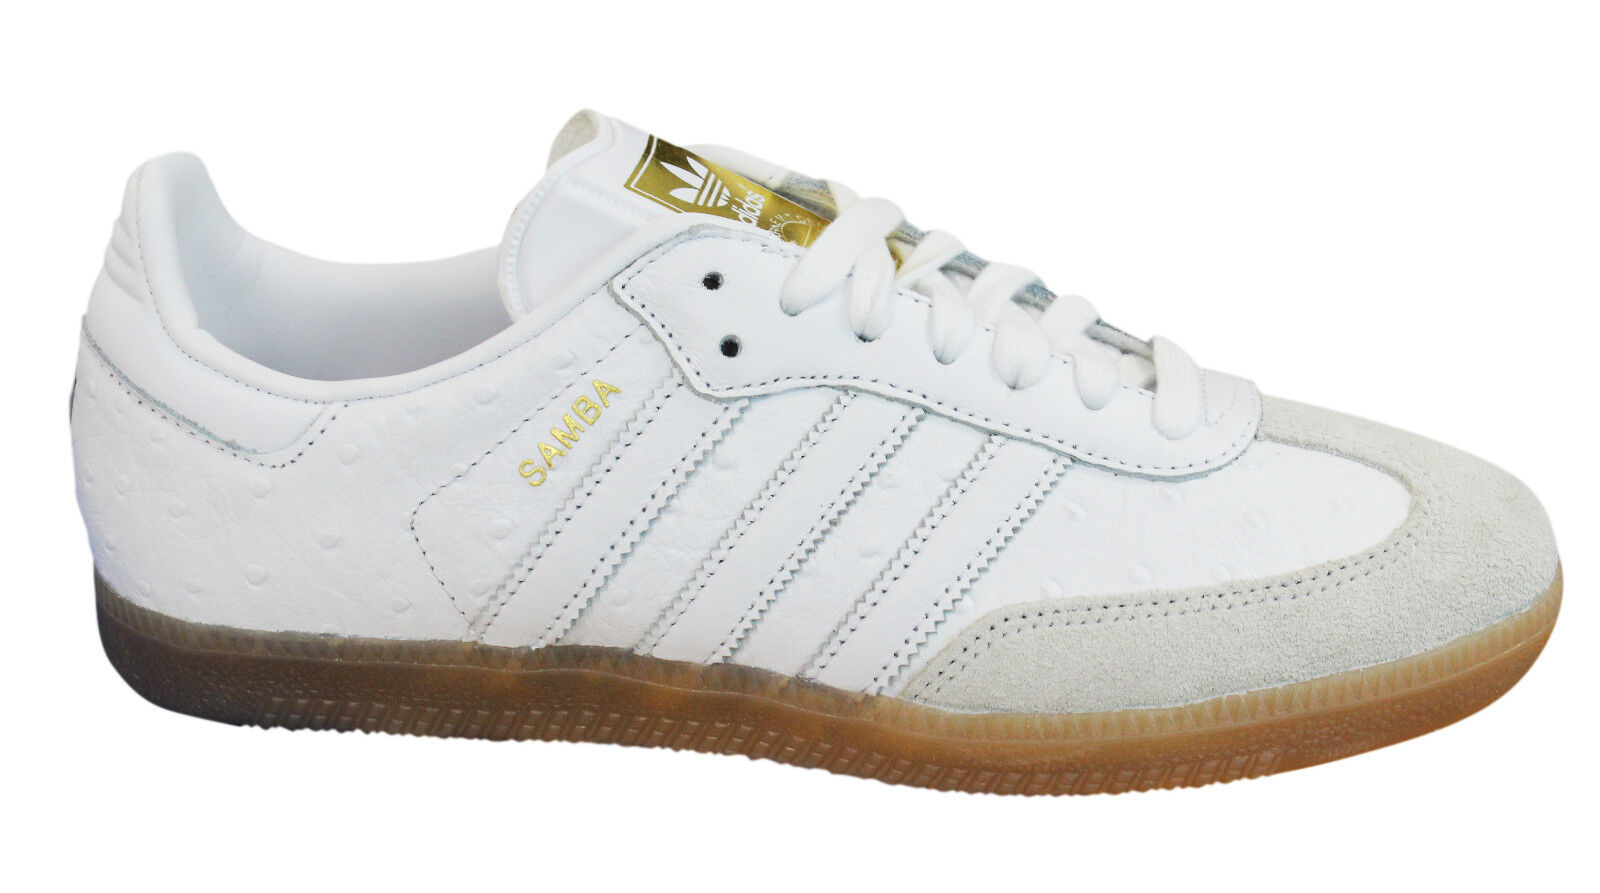 Adidas Originals Samba femmes  Trainers Lace Up  Chaussures blanc  Leather BZ0619 M17